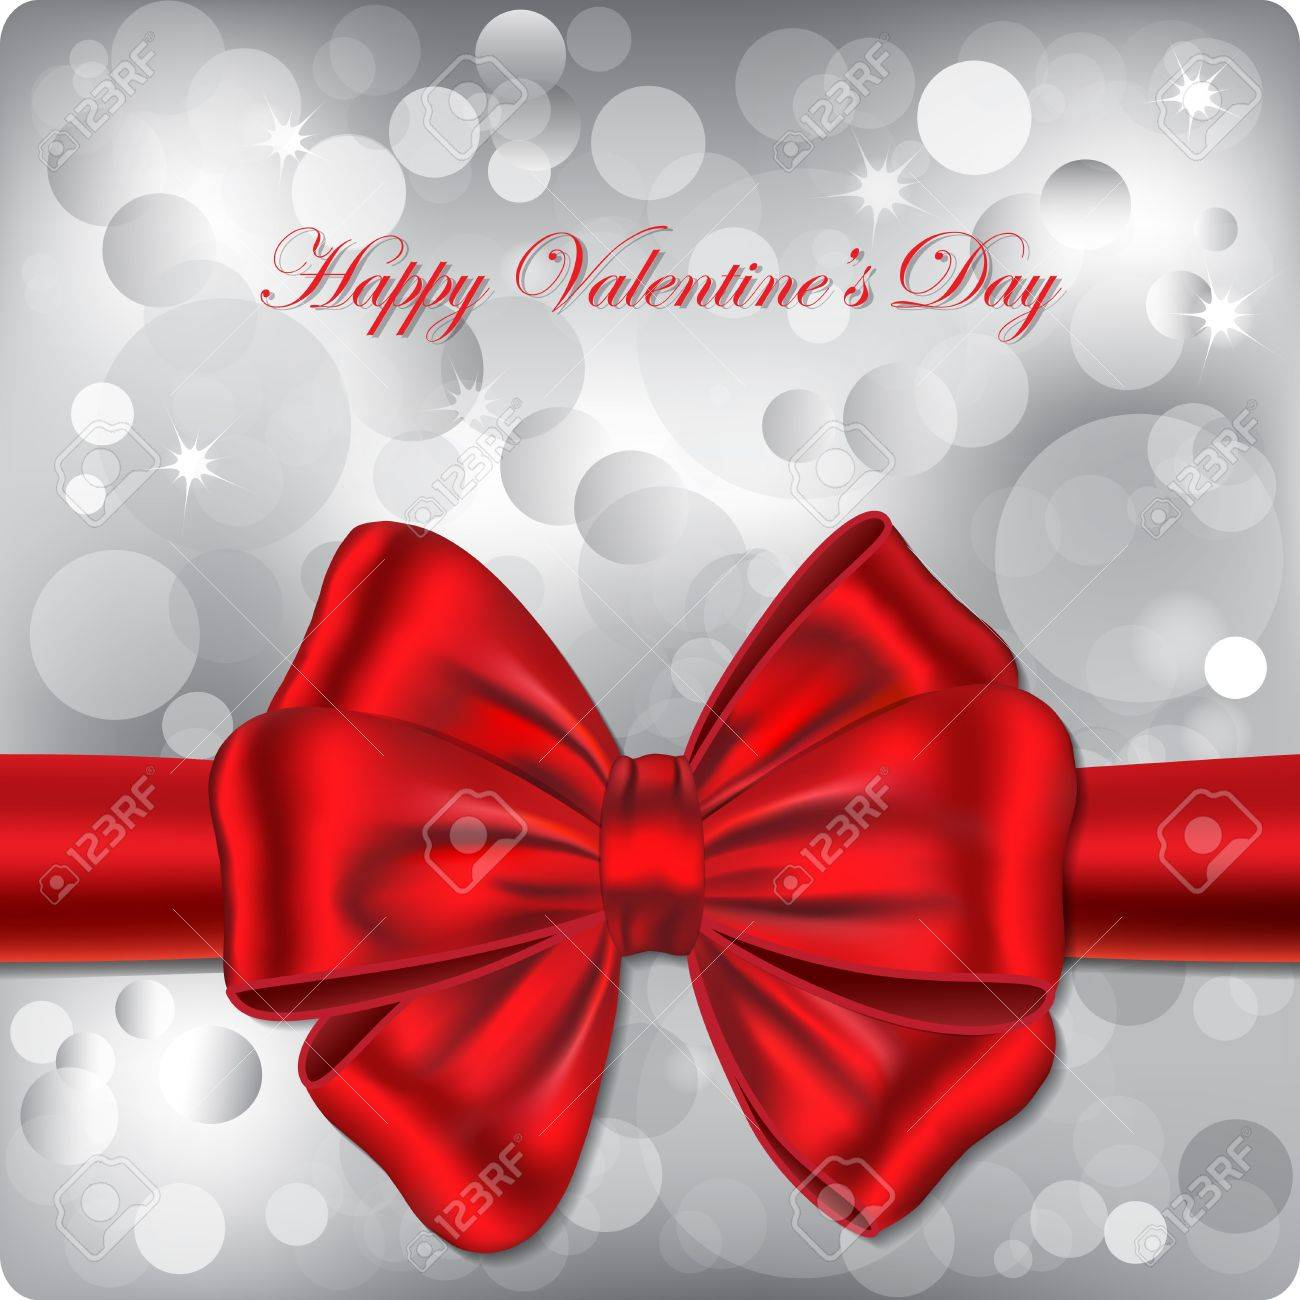 Happy Valentines Day Gift Card Bokeh Background With Red Ribbon – Valentines Day Gift Card